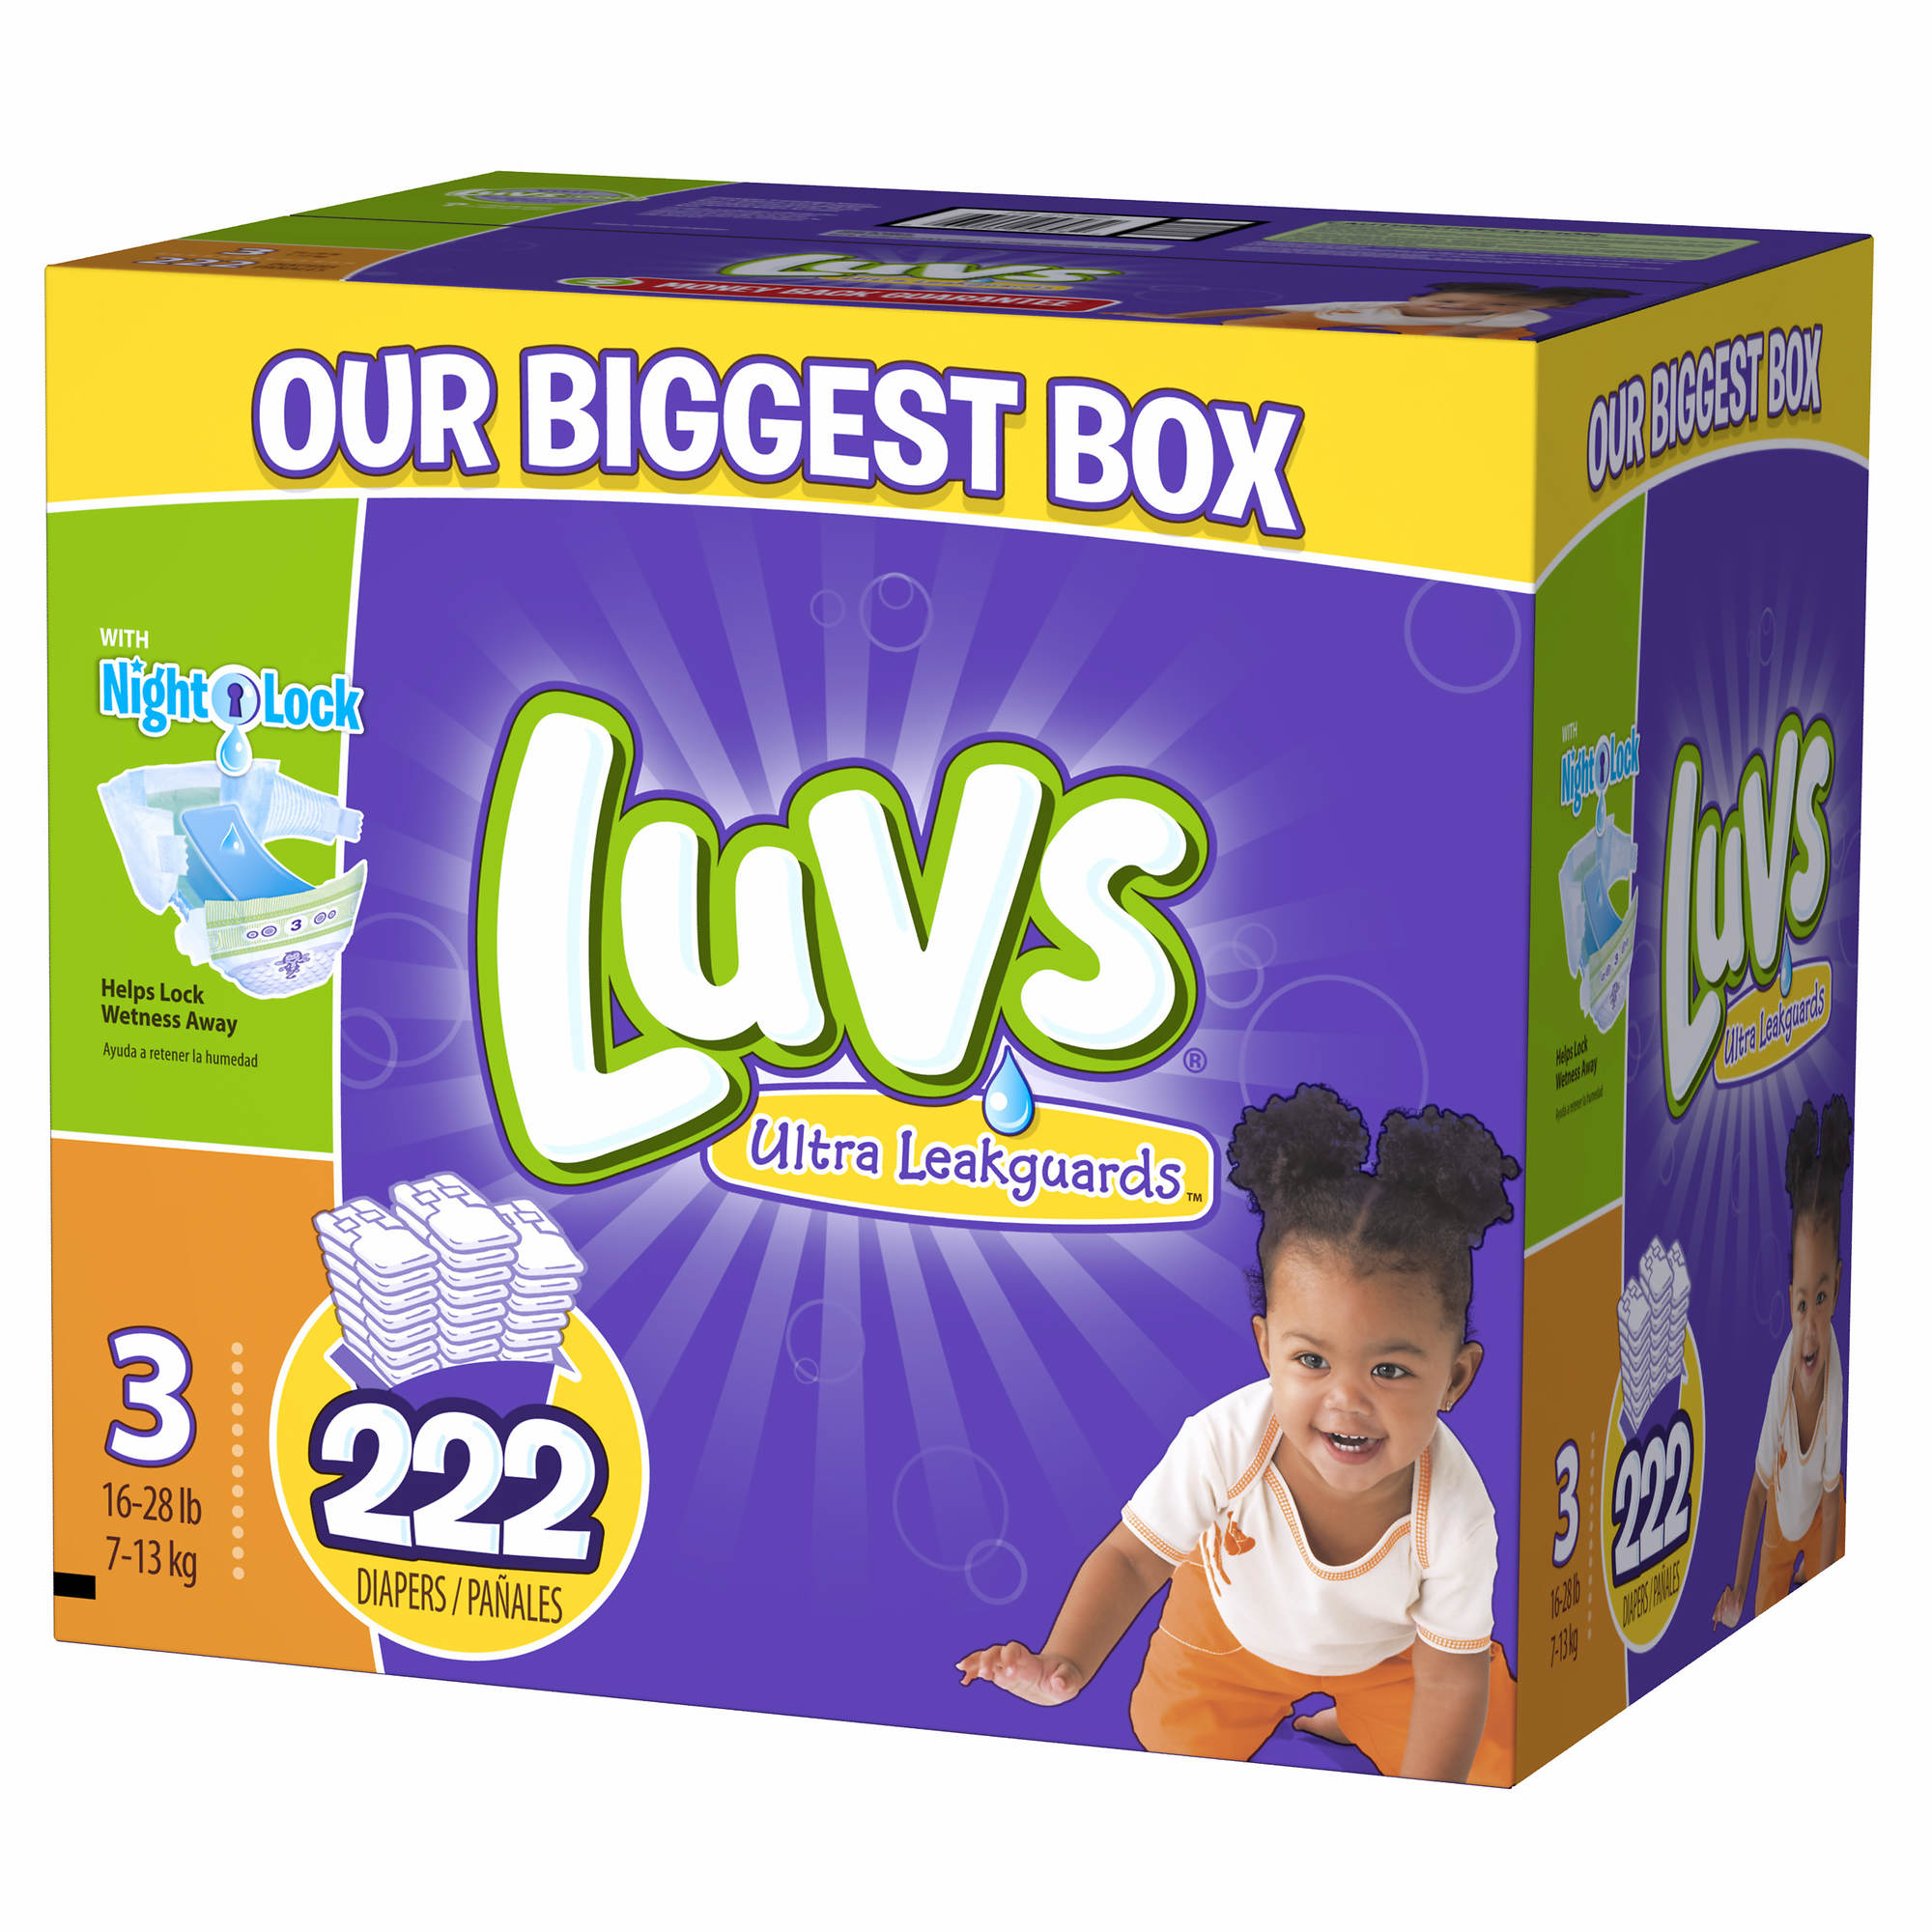 About Buying Diapers on Amazon. Amazon has strong pricing on Pampers diapers and Huggies ticketfinder.ga prices included in this comparison account for the automatic 15% savings you get as an Amazon Mom member. Amazon Mom is a free program that provides discounts, free shipping and other benefits.. You can save even more if you opt for Subscribe & Save through Amazon; when you select this option.